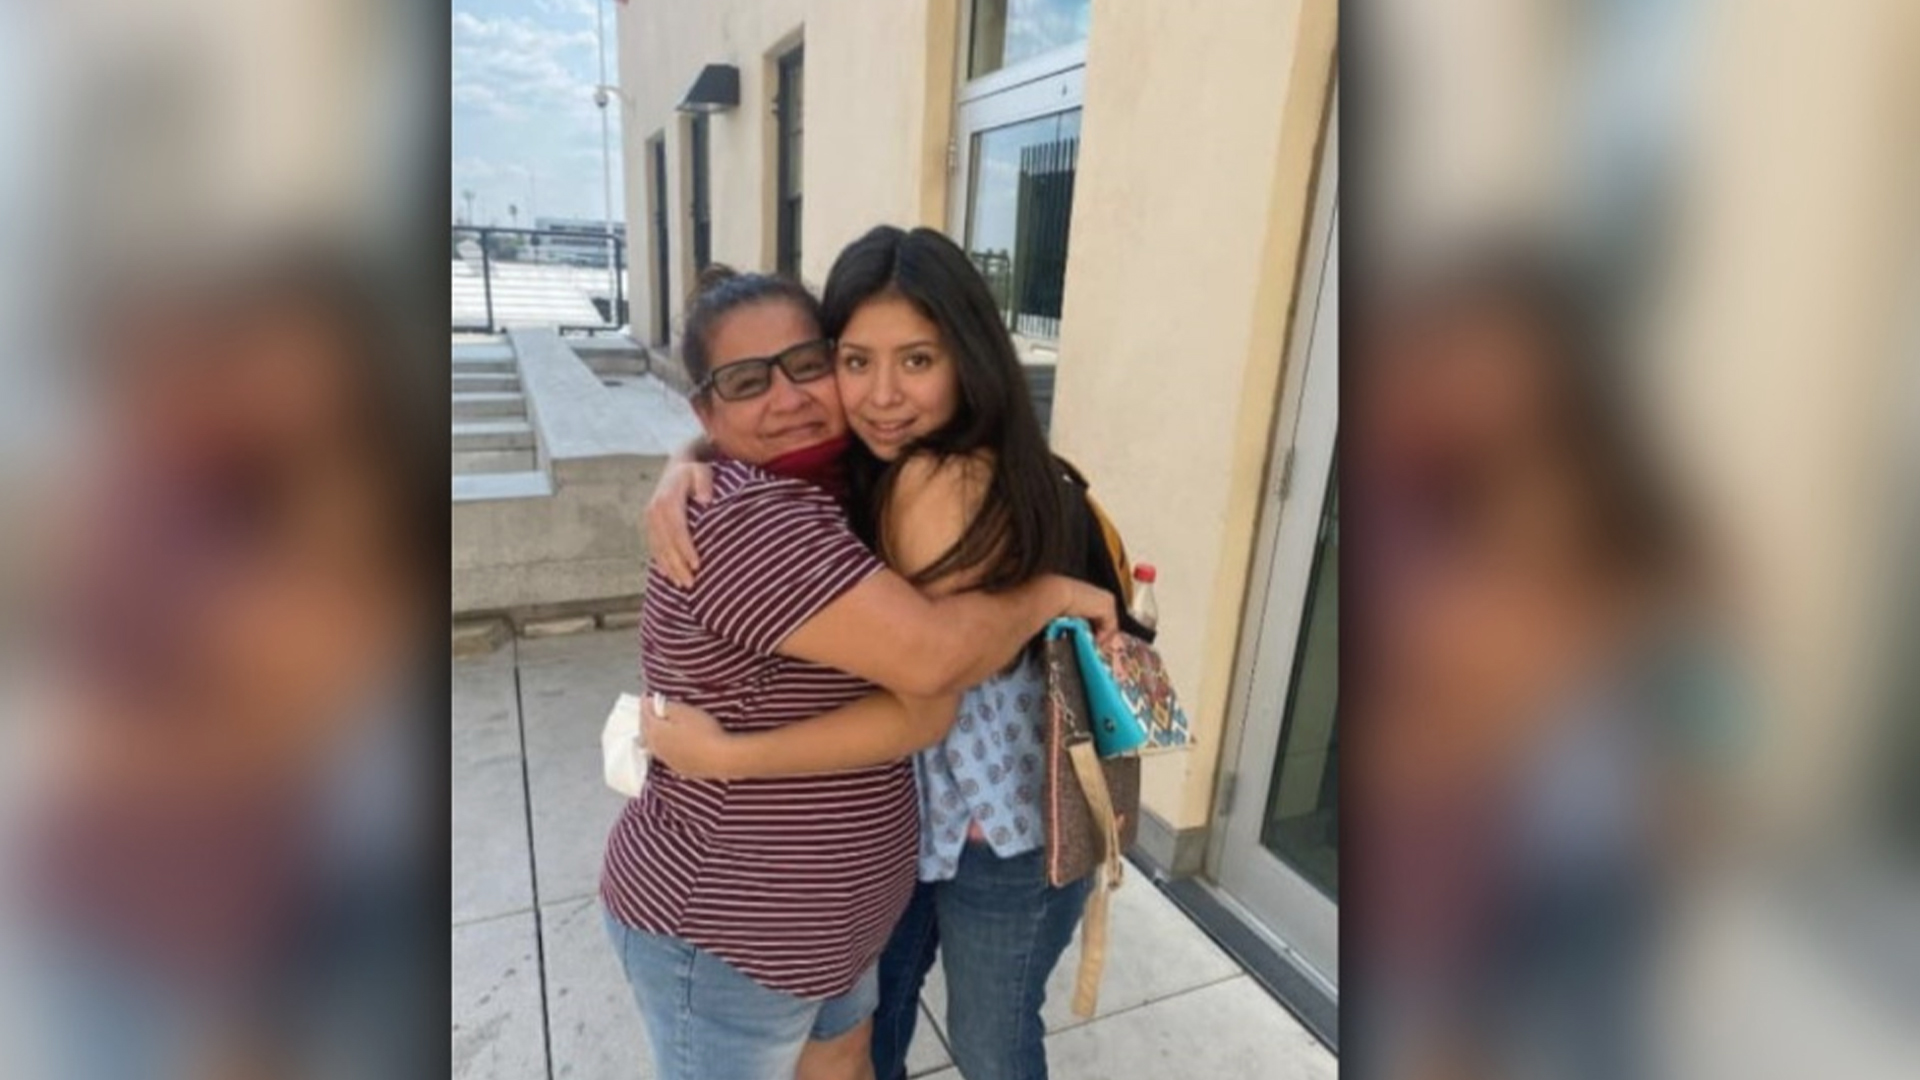 Florida mother reunited with missing daughter who was abducted from home at age 6